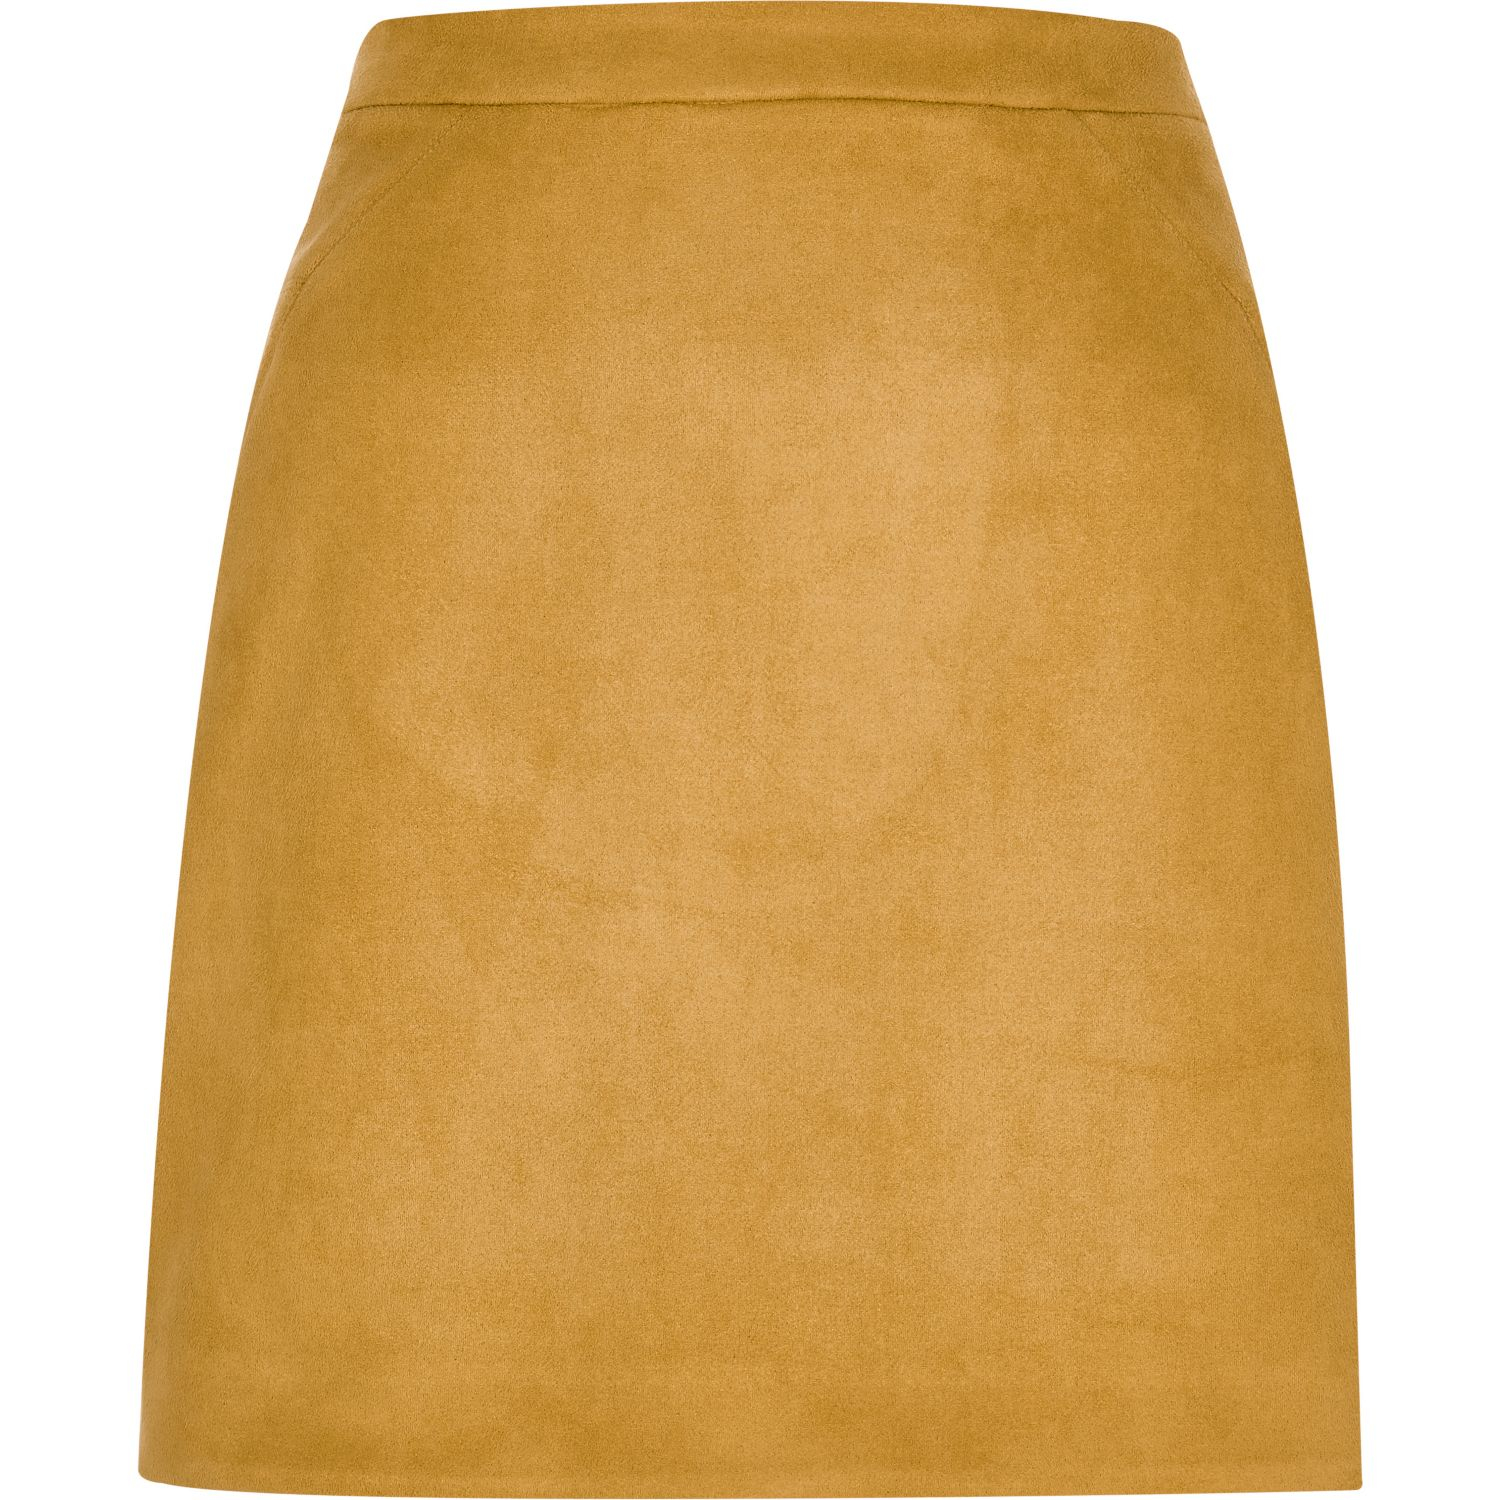 461c631a68b Lyst - River Island Mustard Yellow Faux Suede Mini Skirt in Yellow